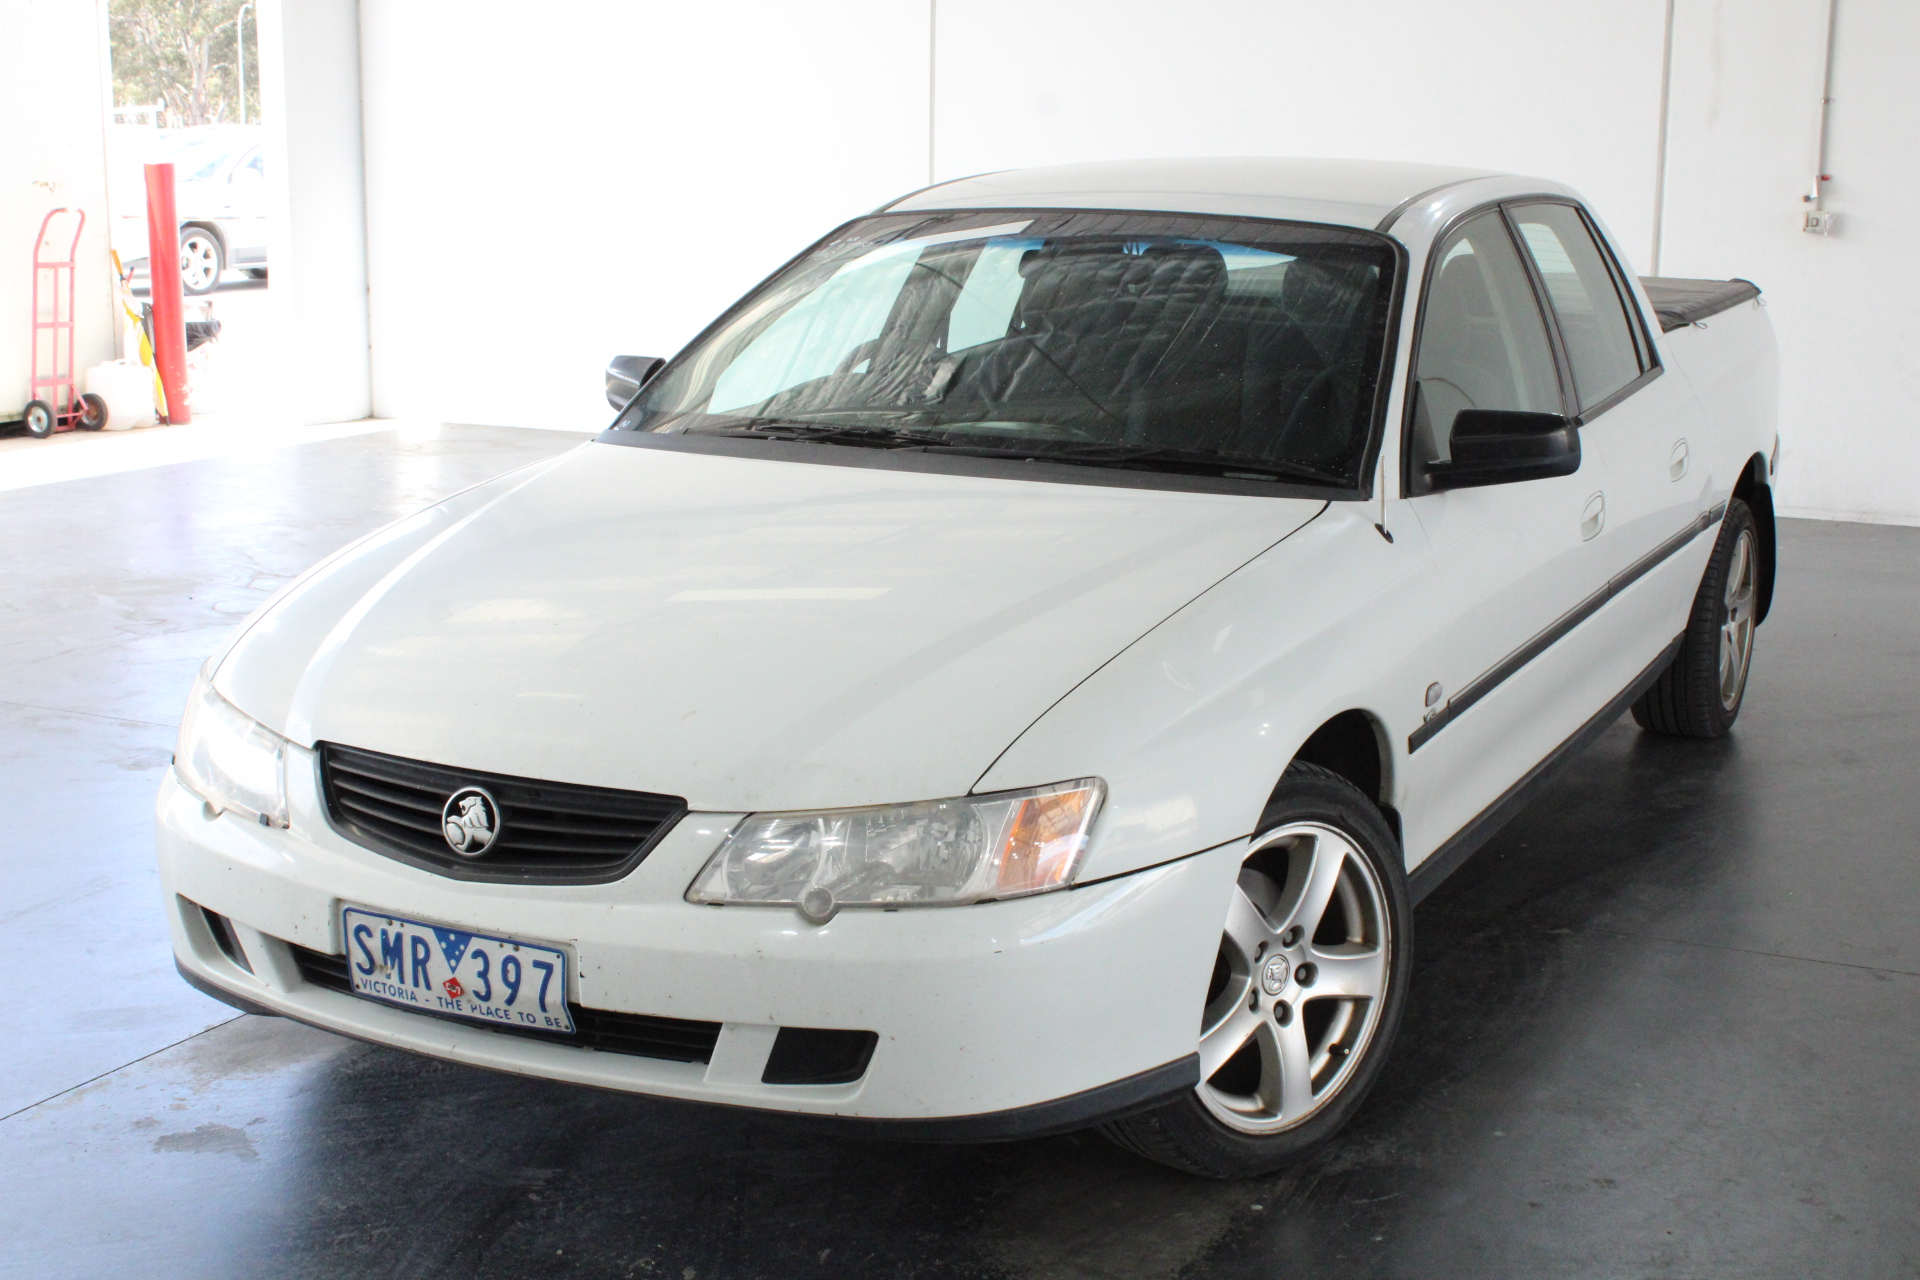 2003 Holden Crewman Y Series Automatic Dual Cab